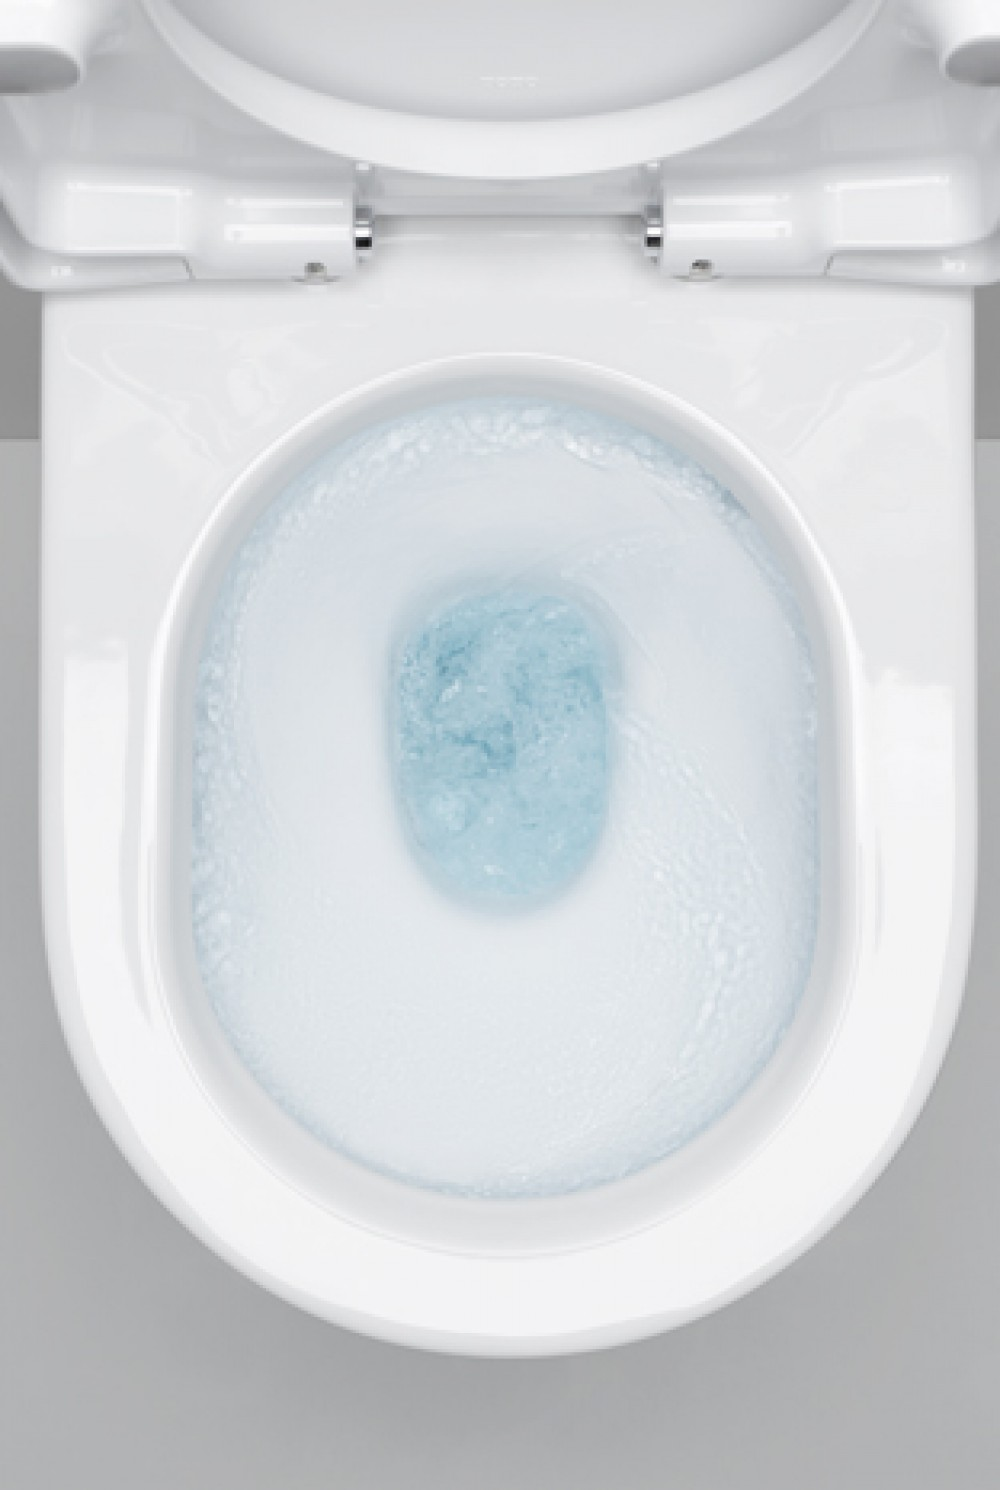 toto nc wall-hung rimless toilet